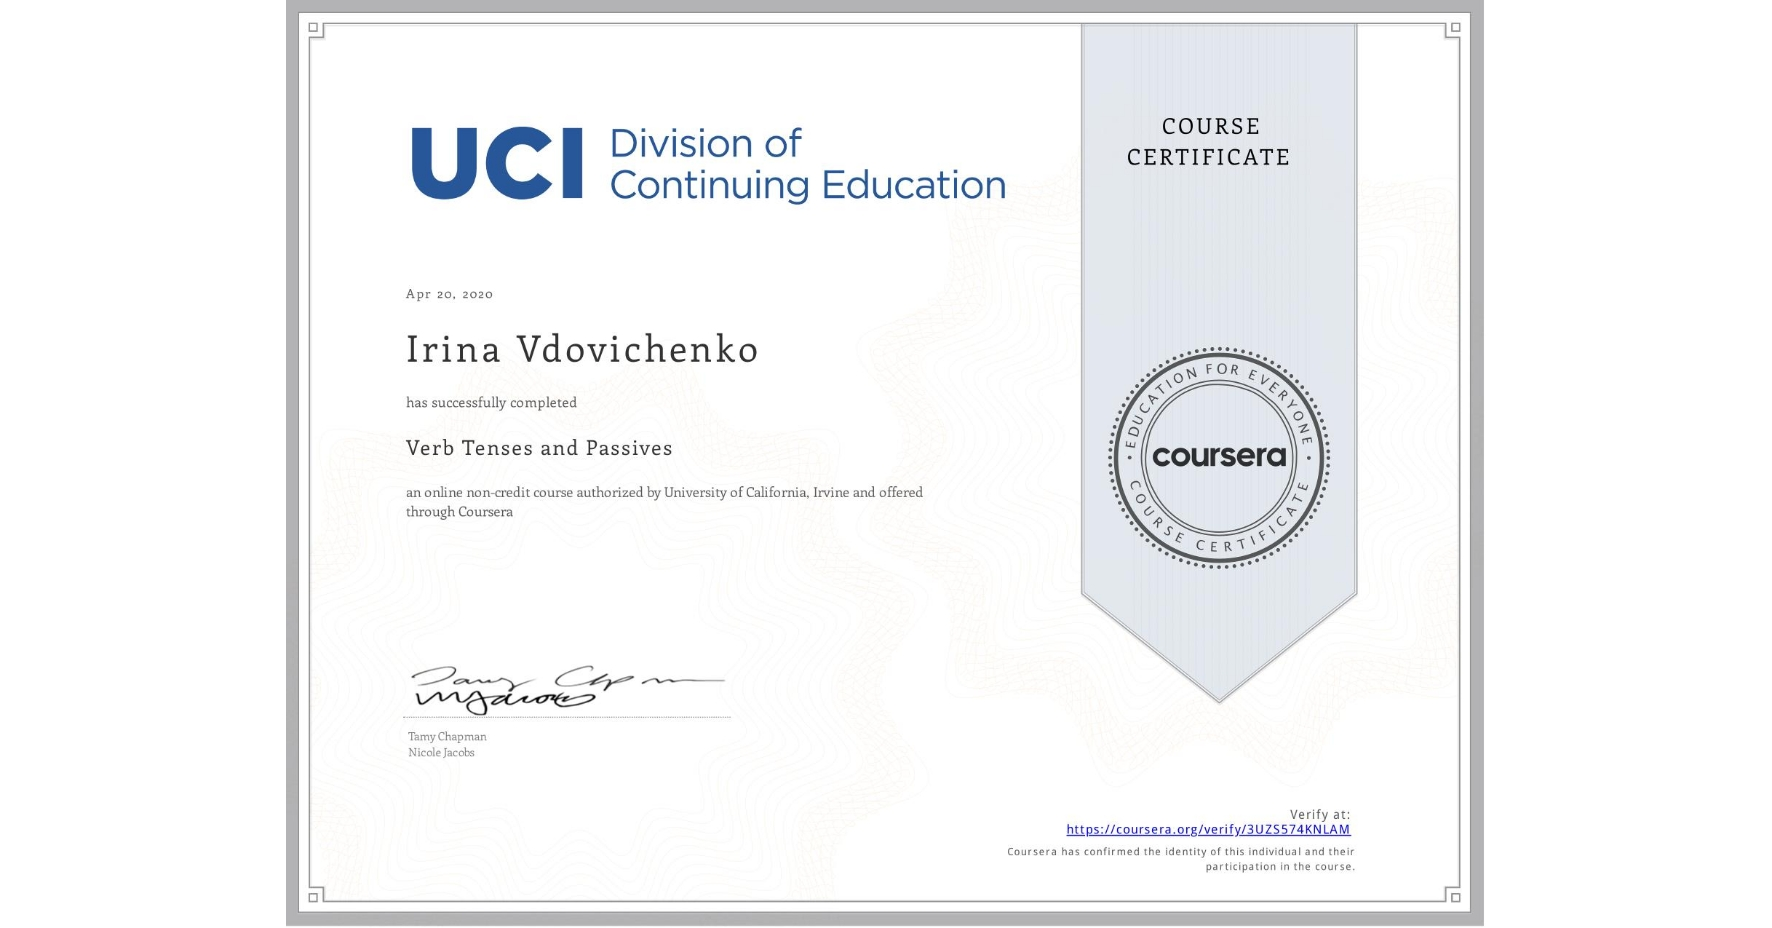 View certificate for Irina Vdovichenko, Verb Tenses and Passives, an online non-credit course authorized by University of California, Irvine and offered through Coursera